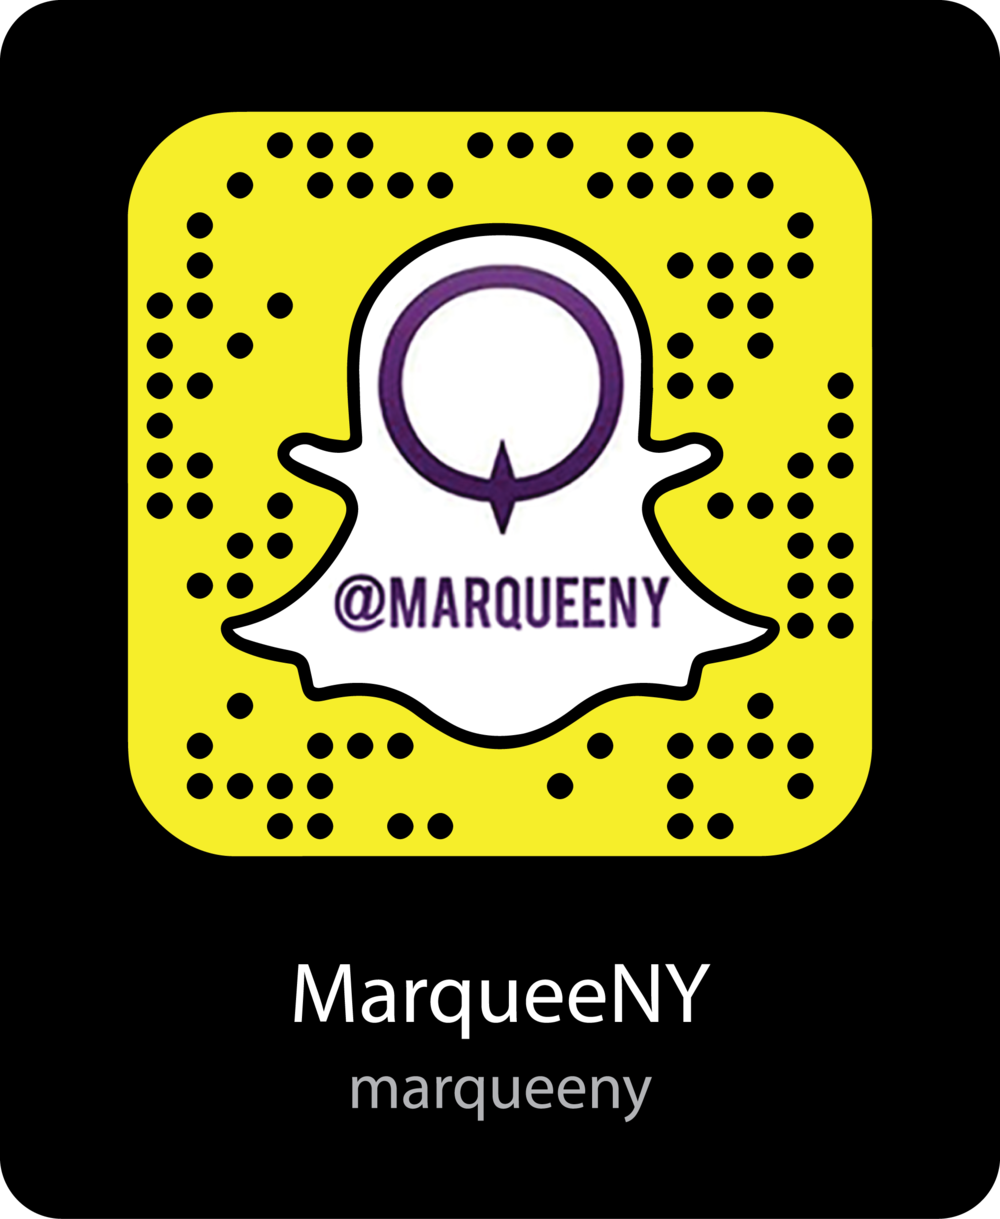 marqueeny-Brands-snapchat-snapcode.png